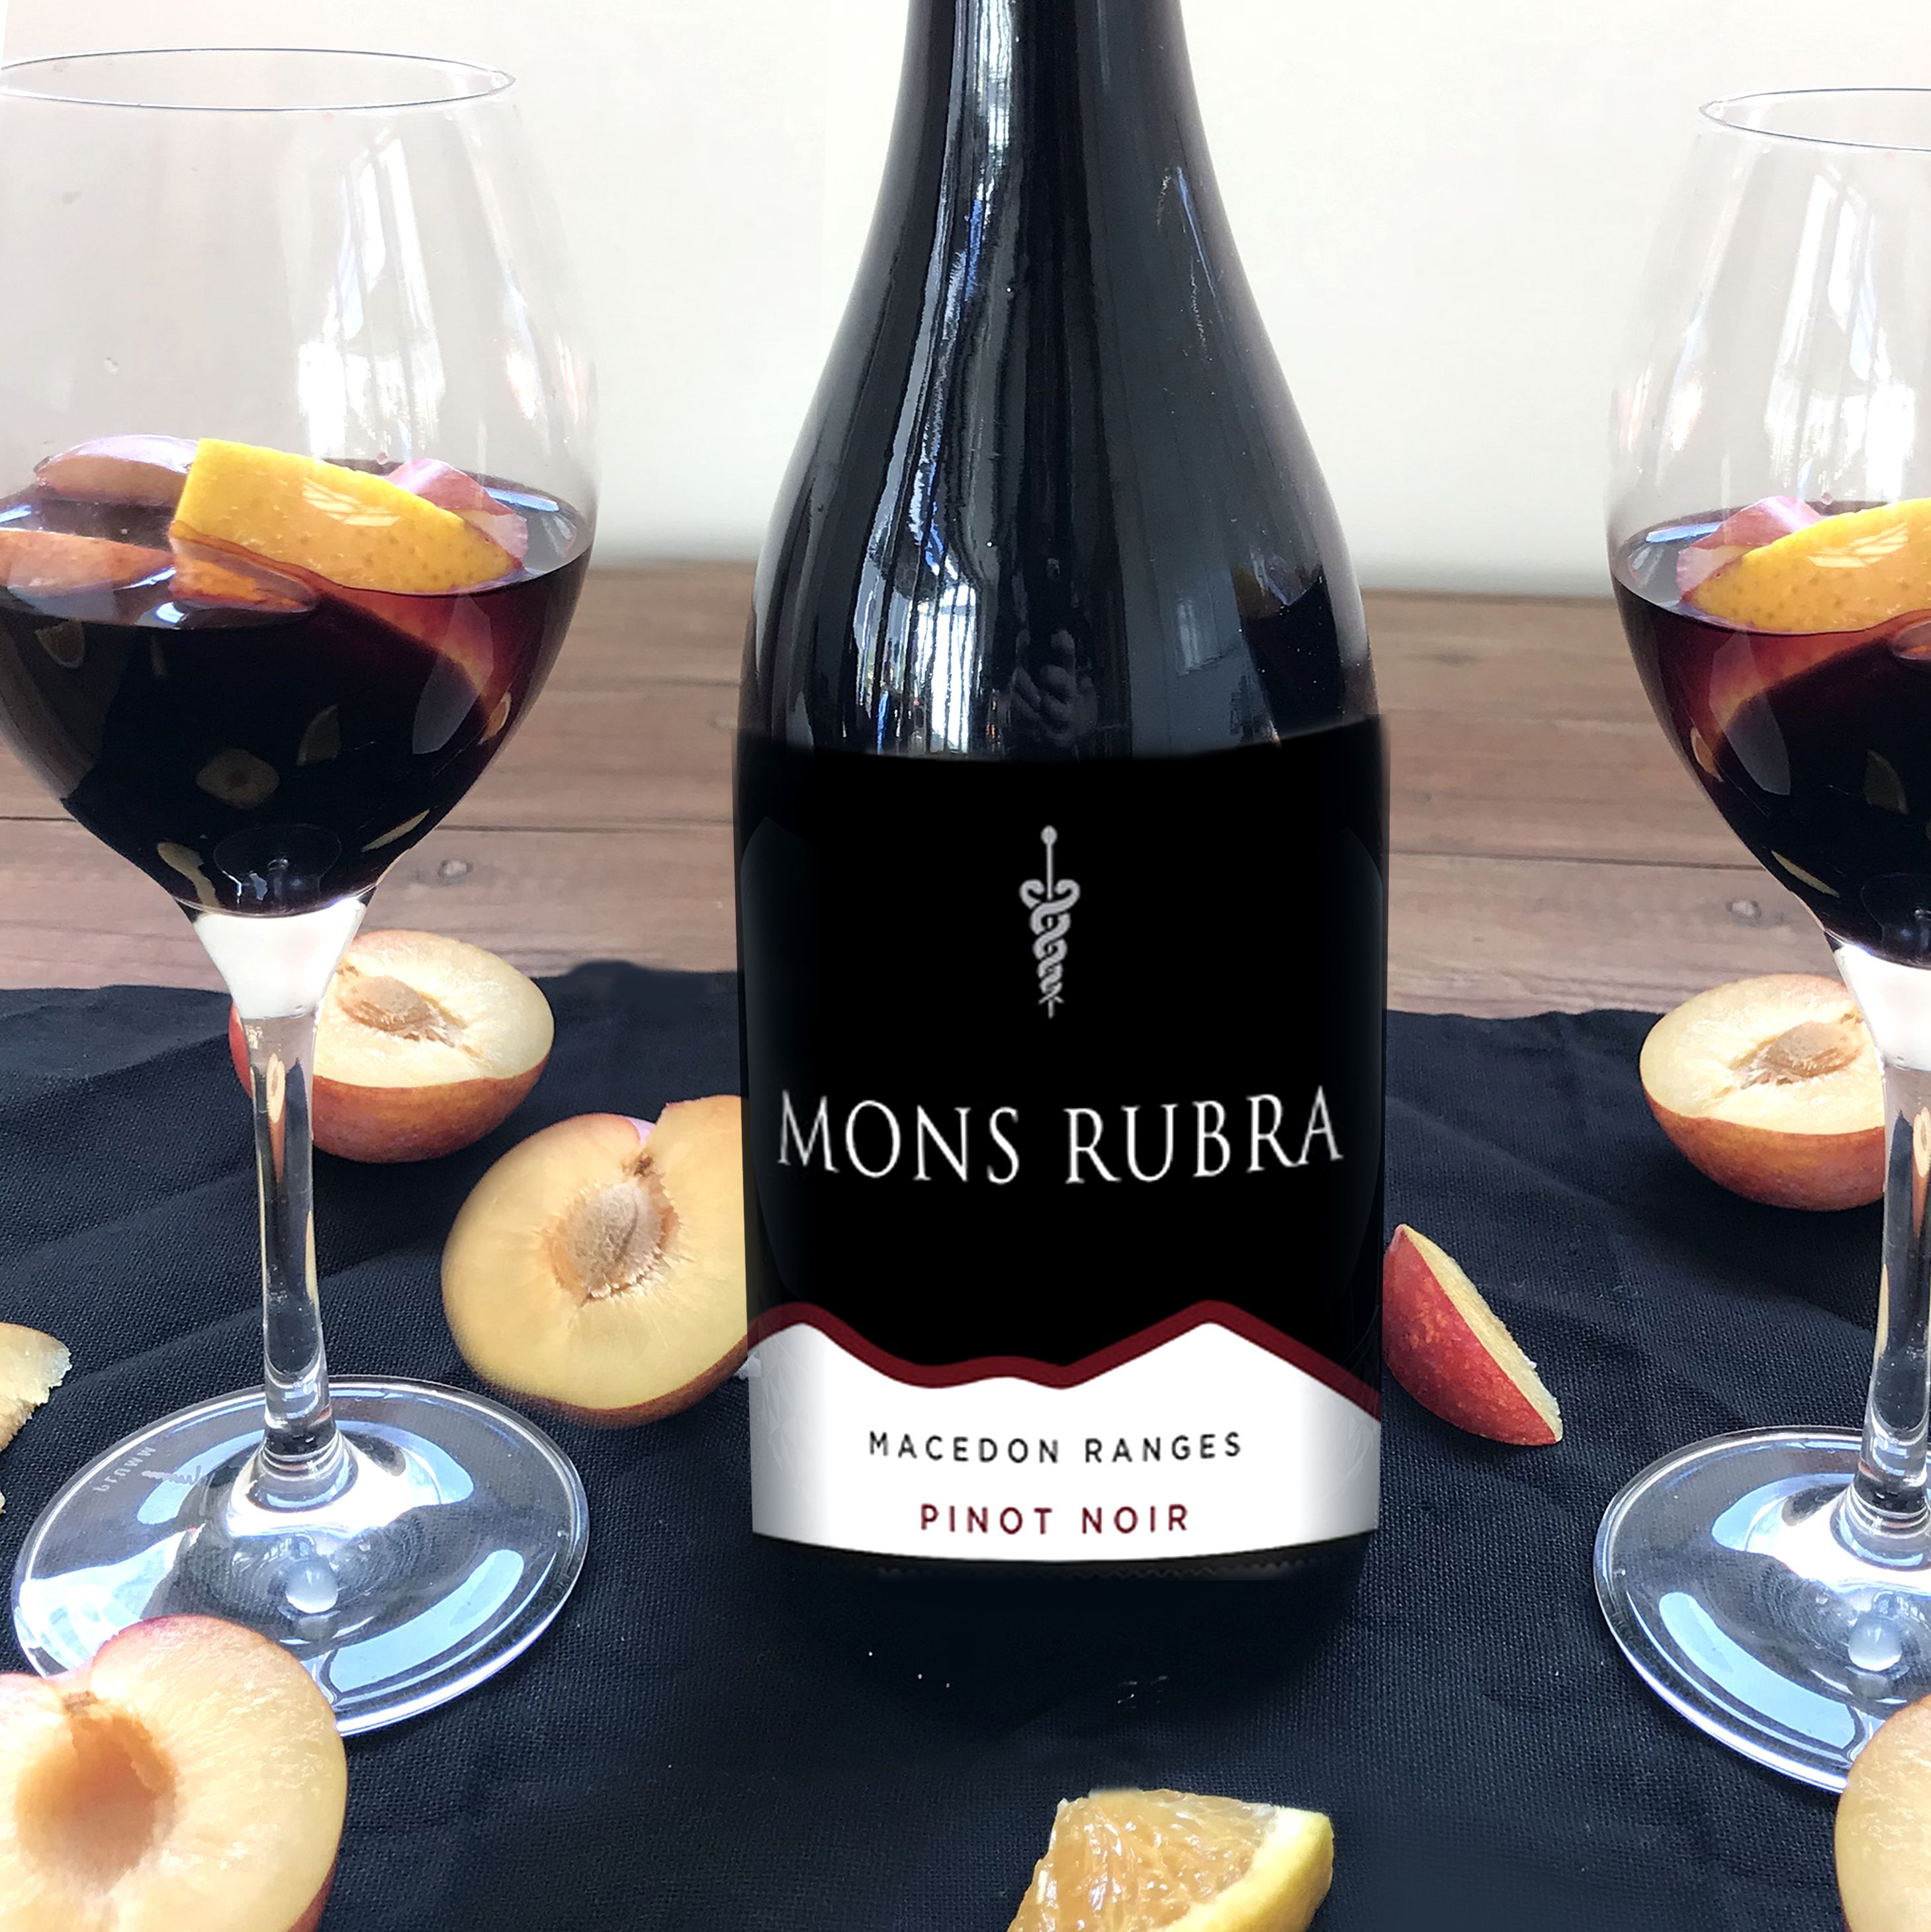 A beautiful 2010 mons rubra pinot noir with a supple and